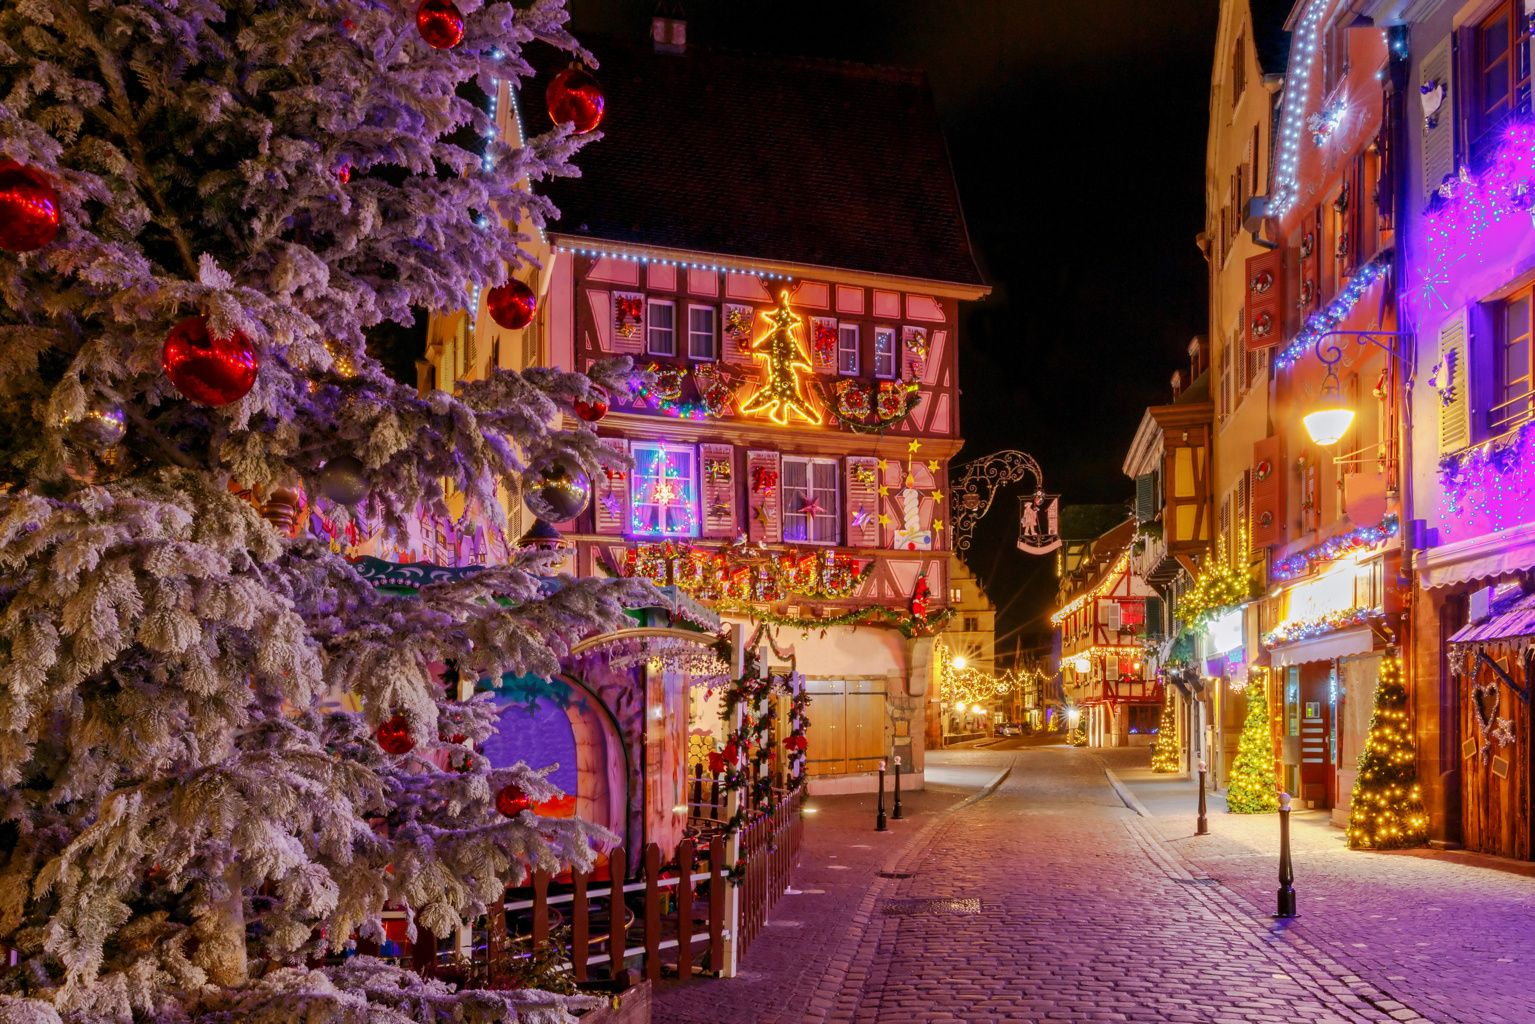 Colmar Christmas Market 2020 With its 500 year tradition, the Colmar Christmas Market is